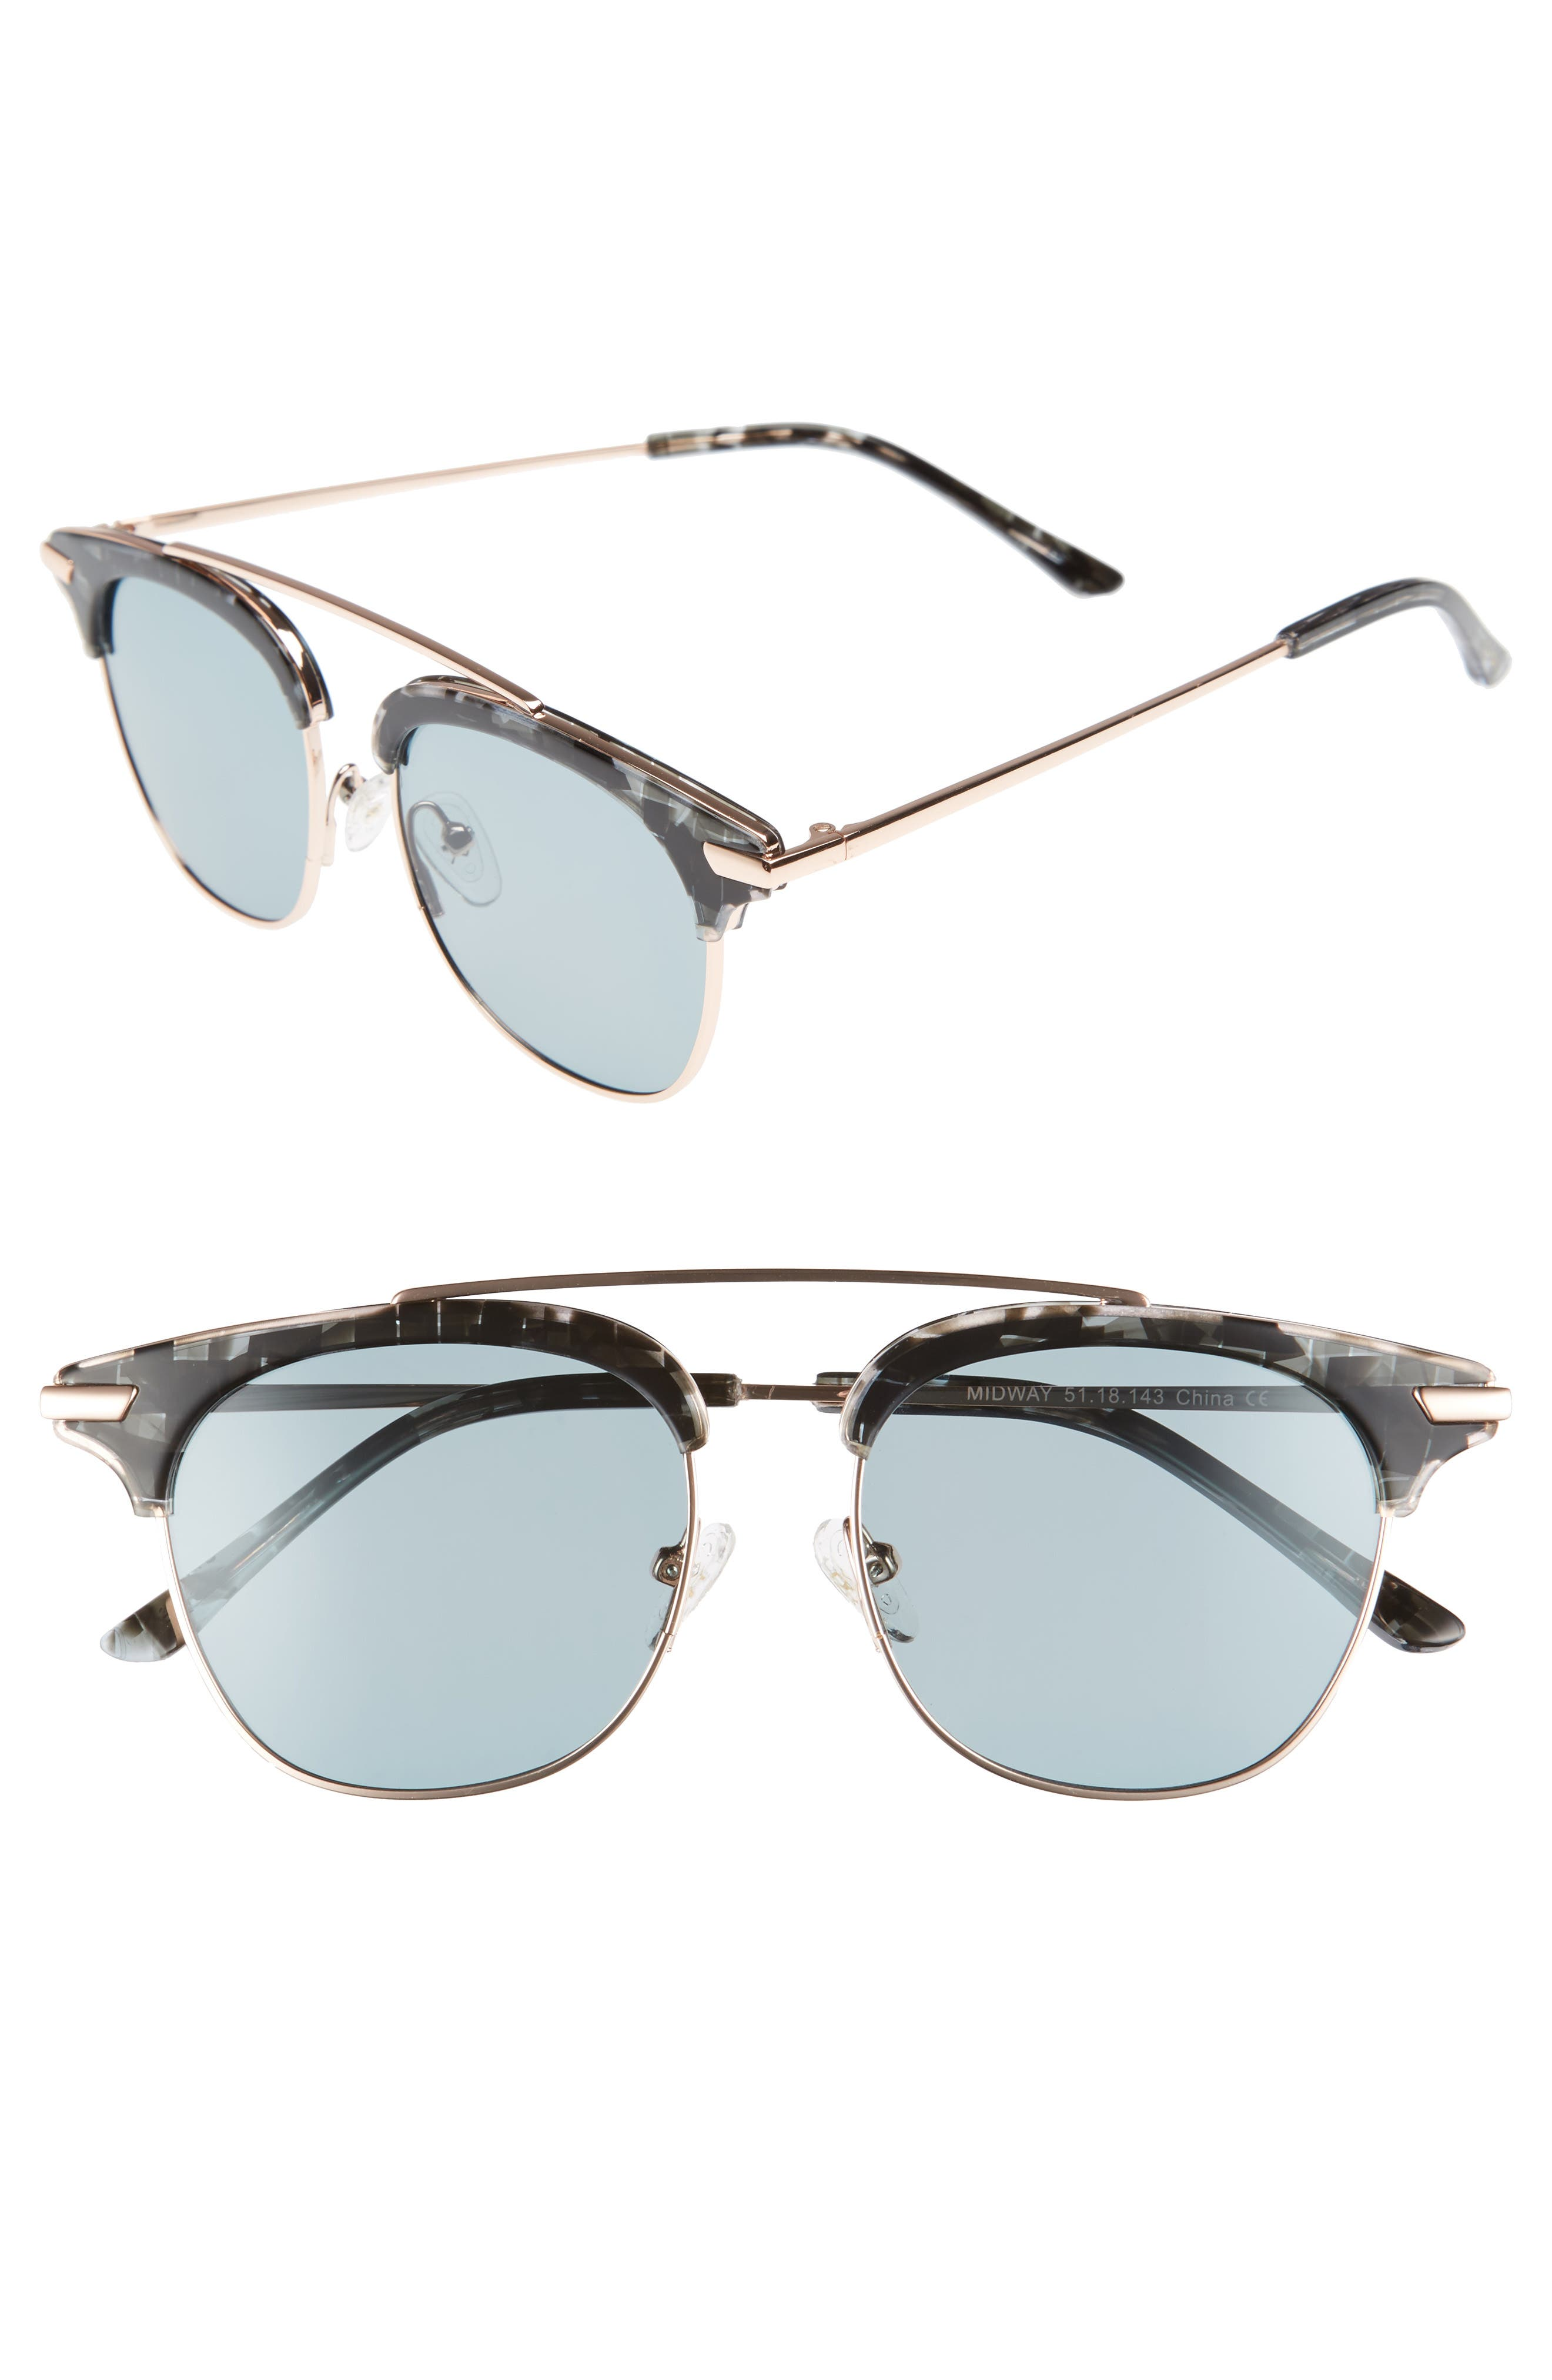 Midway 51mm Polarized Brow Bar Sunglasses,                         Main,                         color, 020